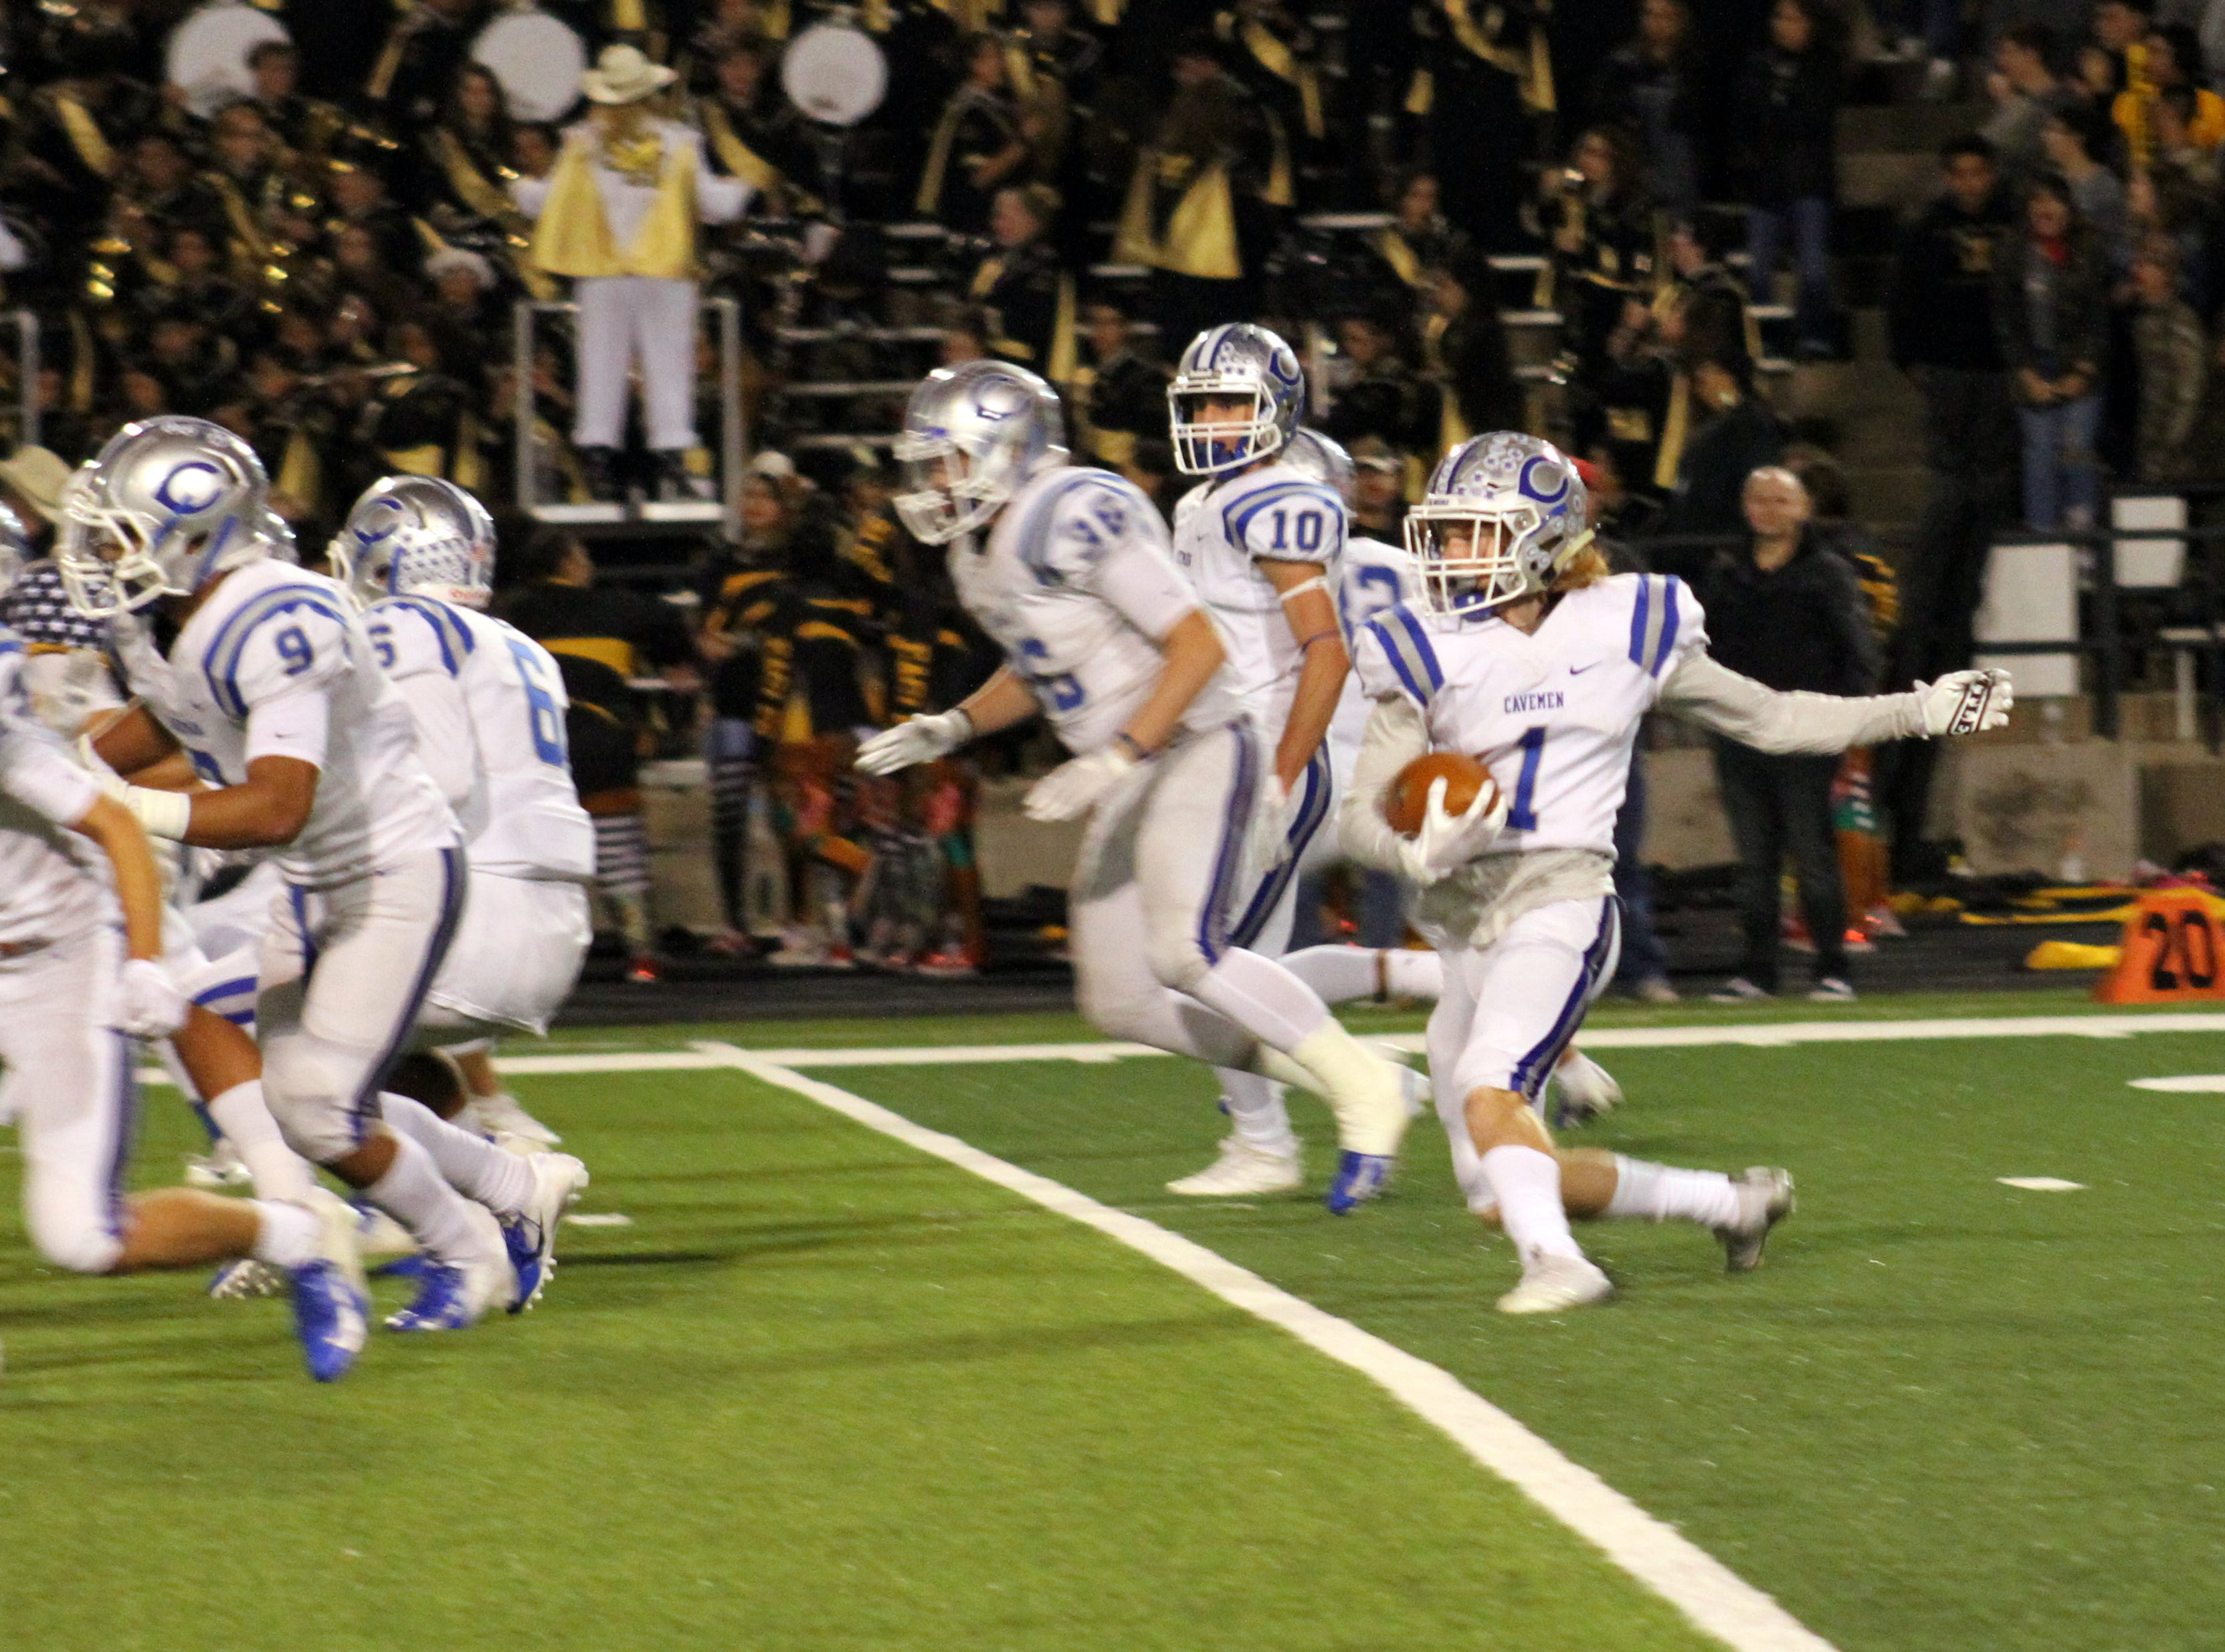 Dustin Eaton (1) stutter steps on a kickoff return while his line sets up blocks during Friday's game against Hobbs.